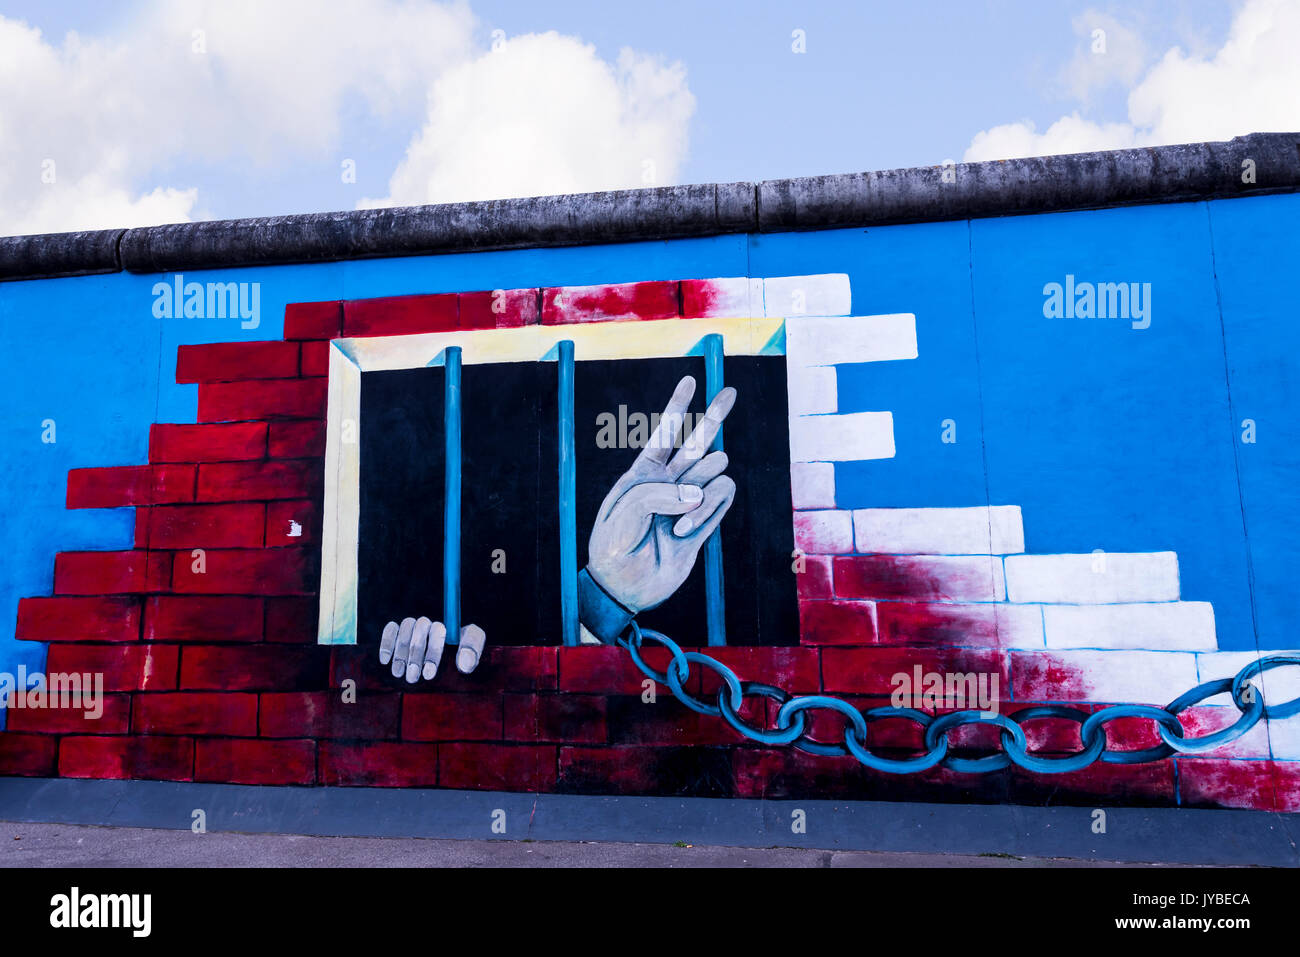 The Berlin Wall that divided East from West Berlin in Germany.This is        the Eastside Gallery of the Berlin Wall in Berlin Germany - Stock Image